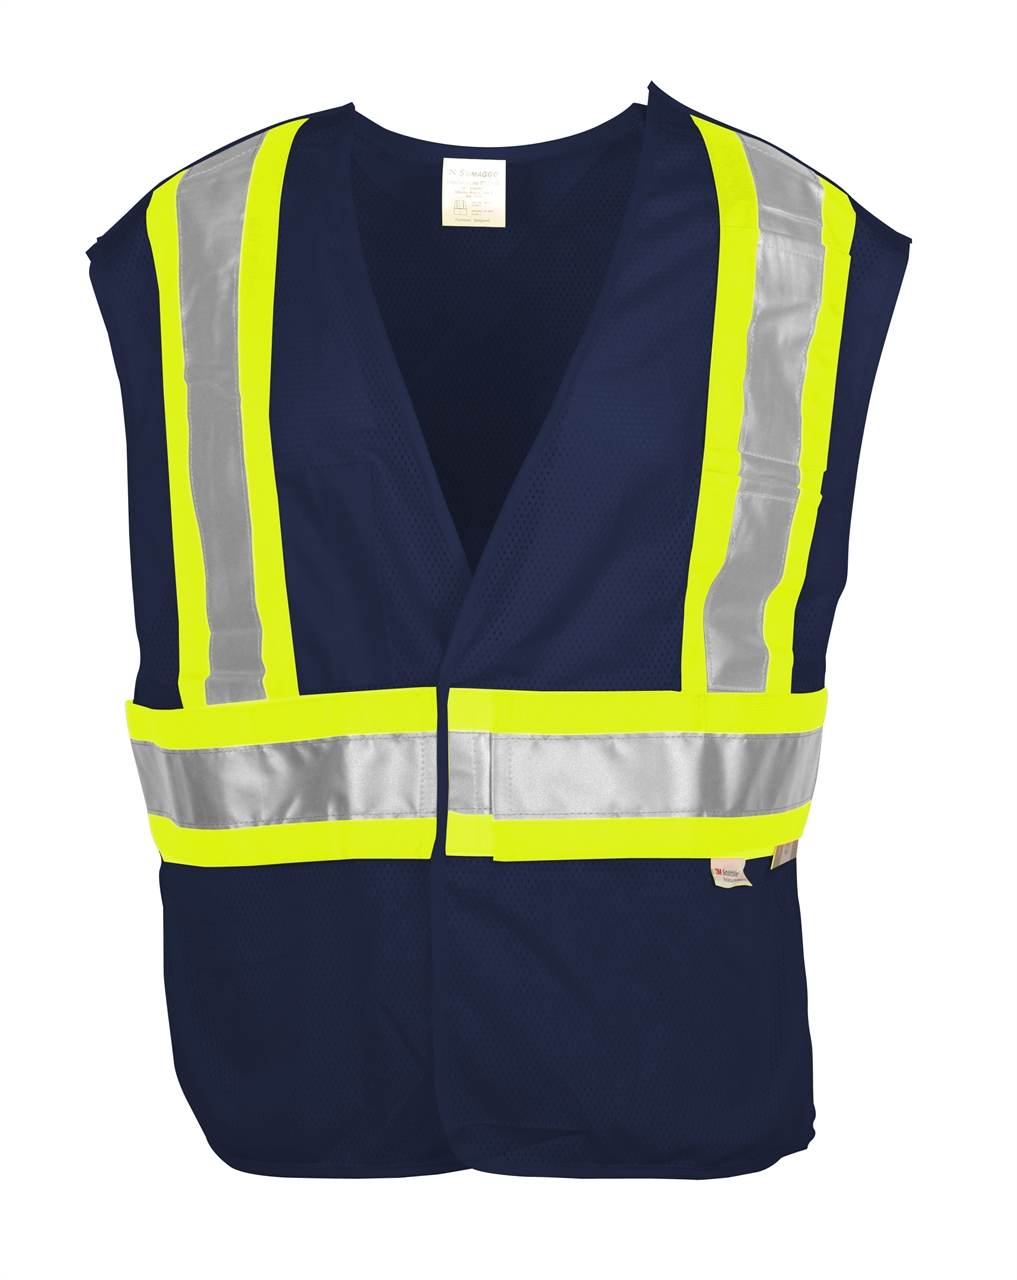 Picture of Sumaggo Tearaway Mesh Vest W/ High Visibility Contrast Material